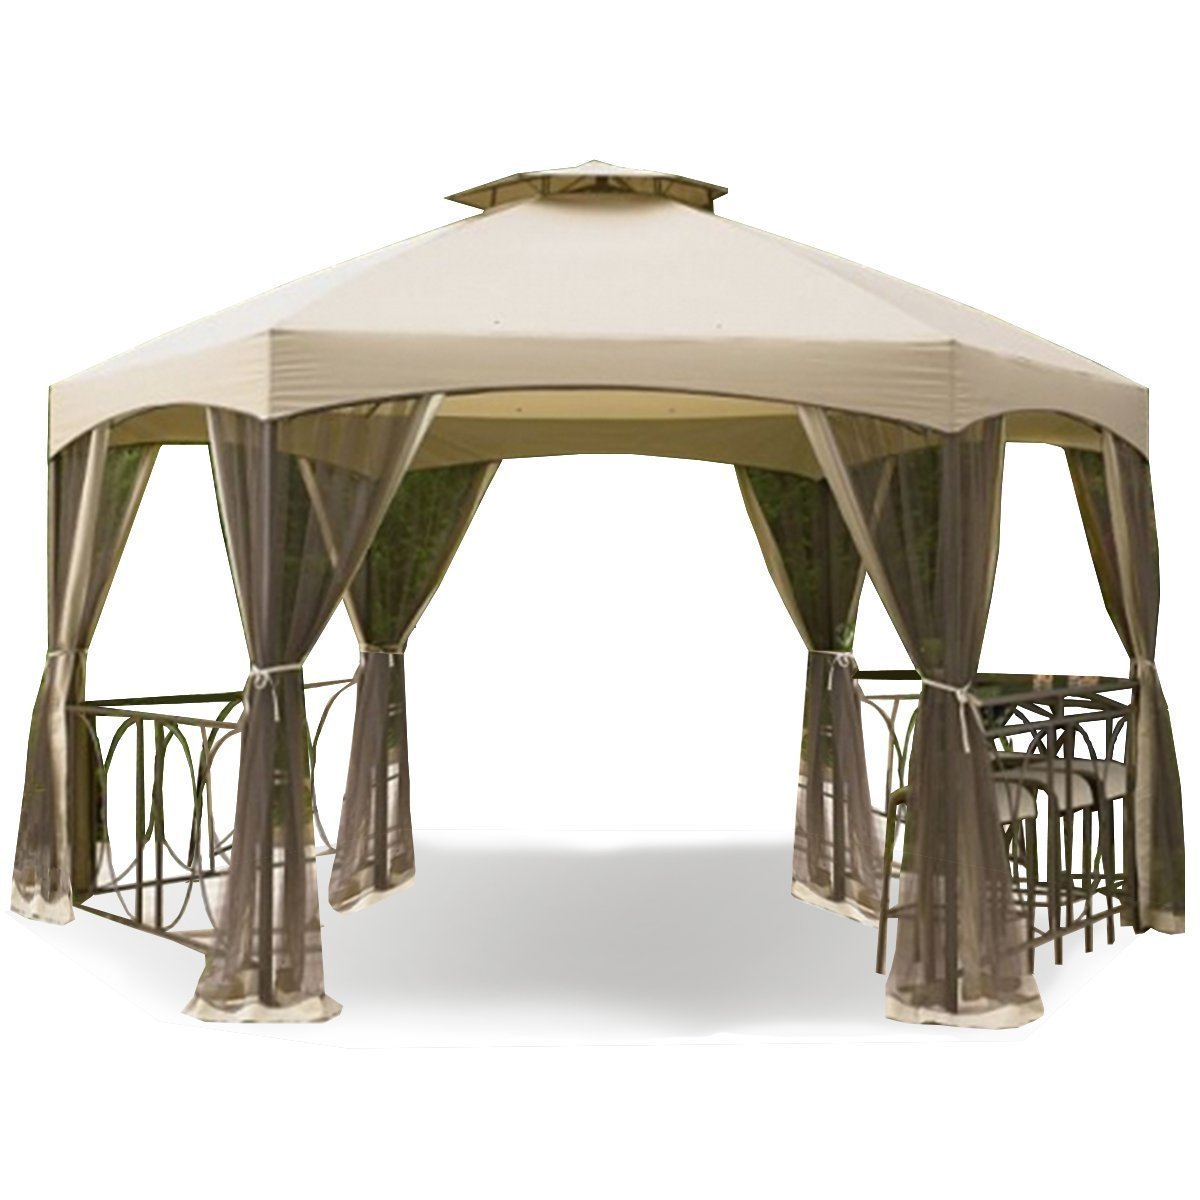 Garden Winds Replacement Canopy for the Dutch Harbor Gazebo - RipLock 350